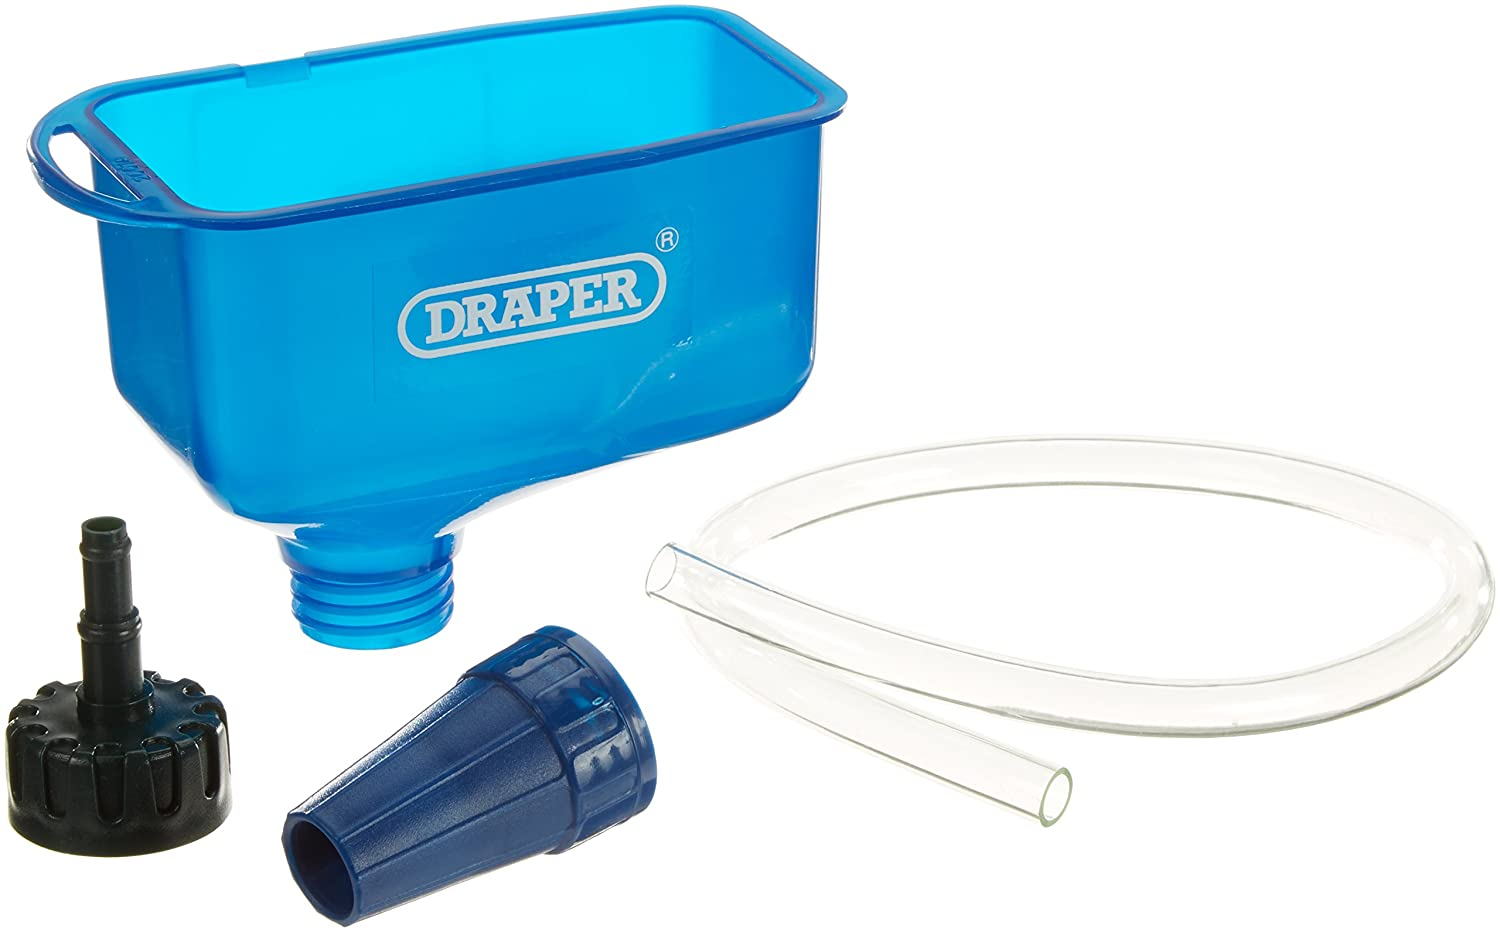 Draper 26327 Oil Funnel with Tube, Blue Draper  Tools Limited